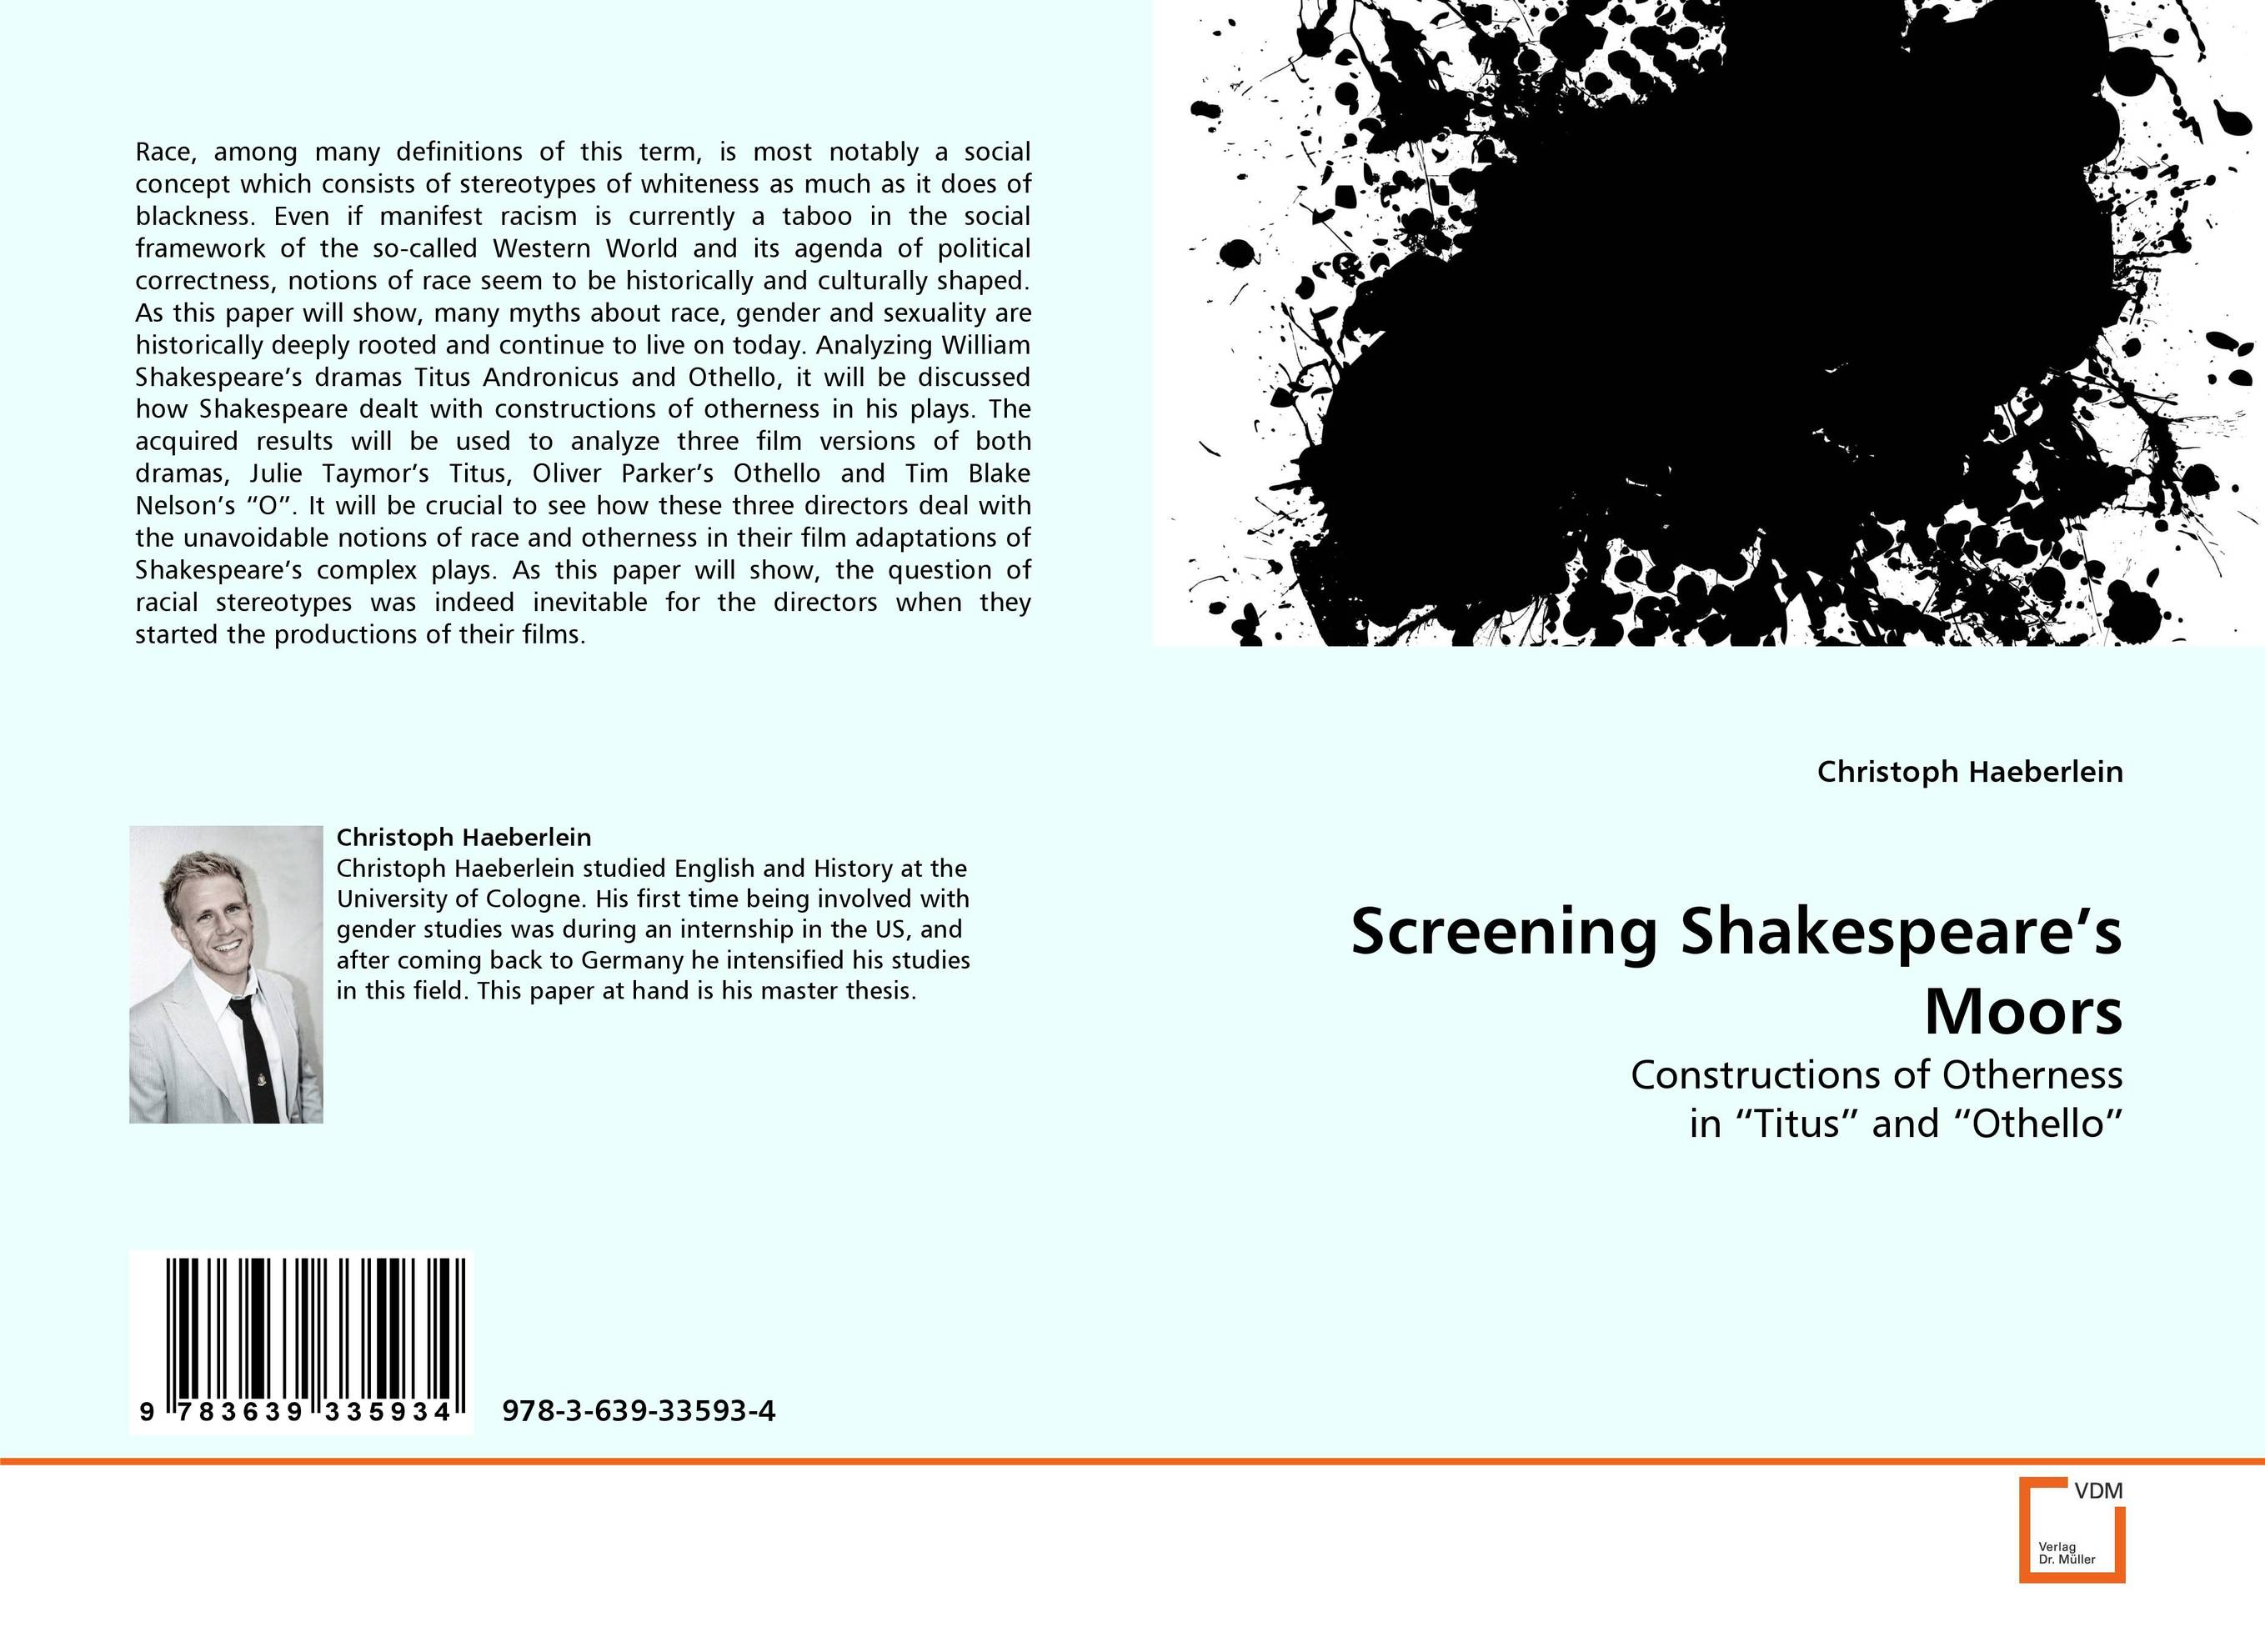 the process of tim blake nelsons conversion of shakespeares othello into o